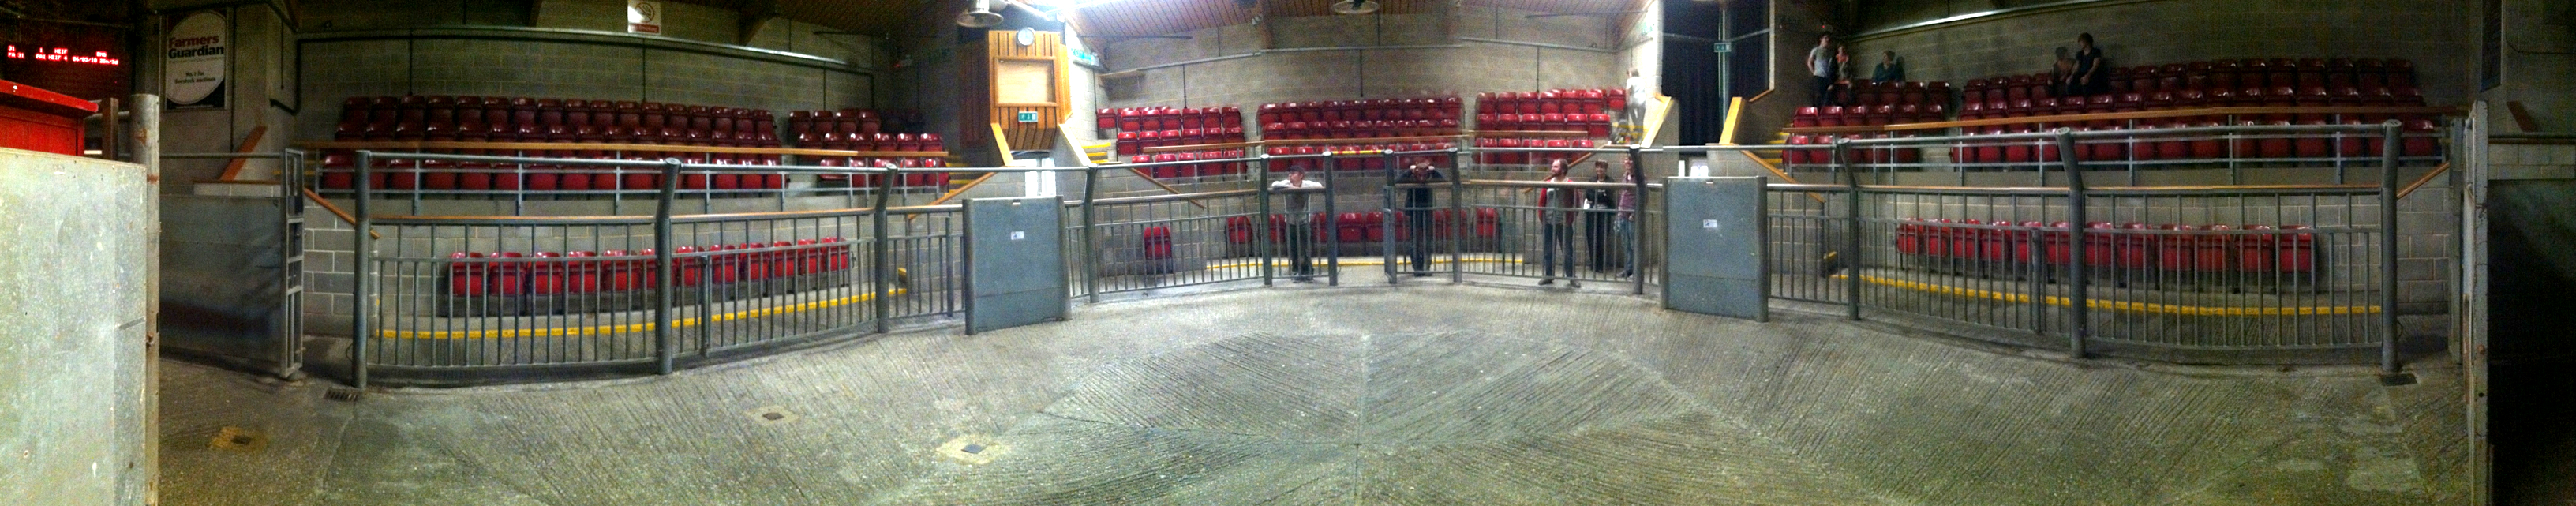 The Mart Theatre (in Cattle Auction Mode)